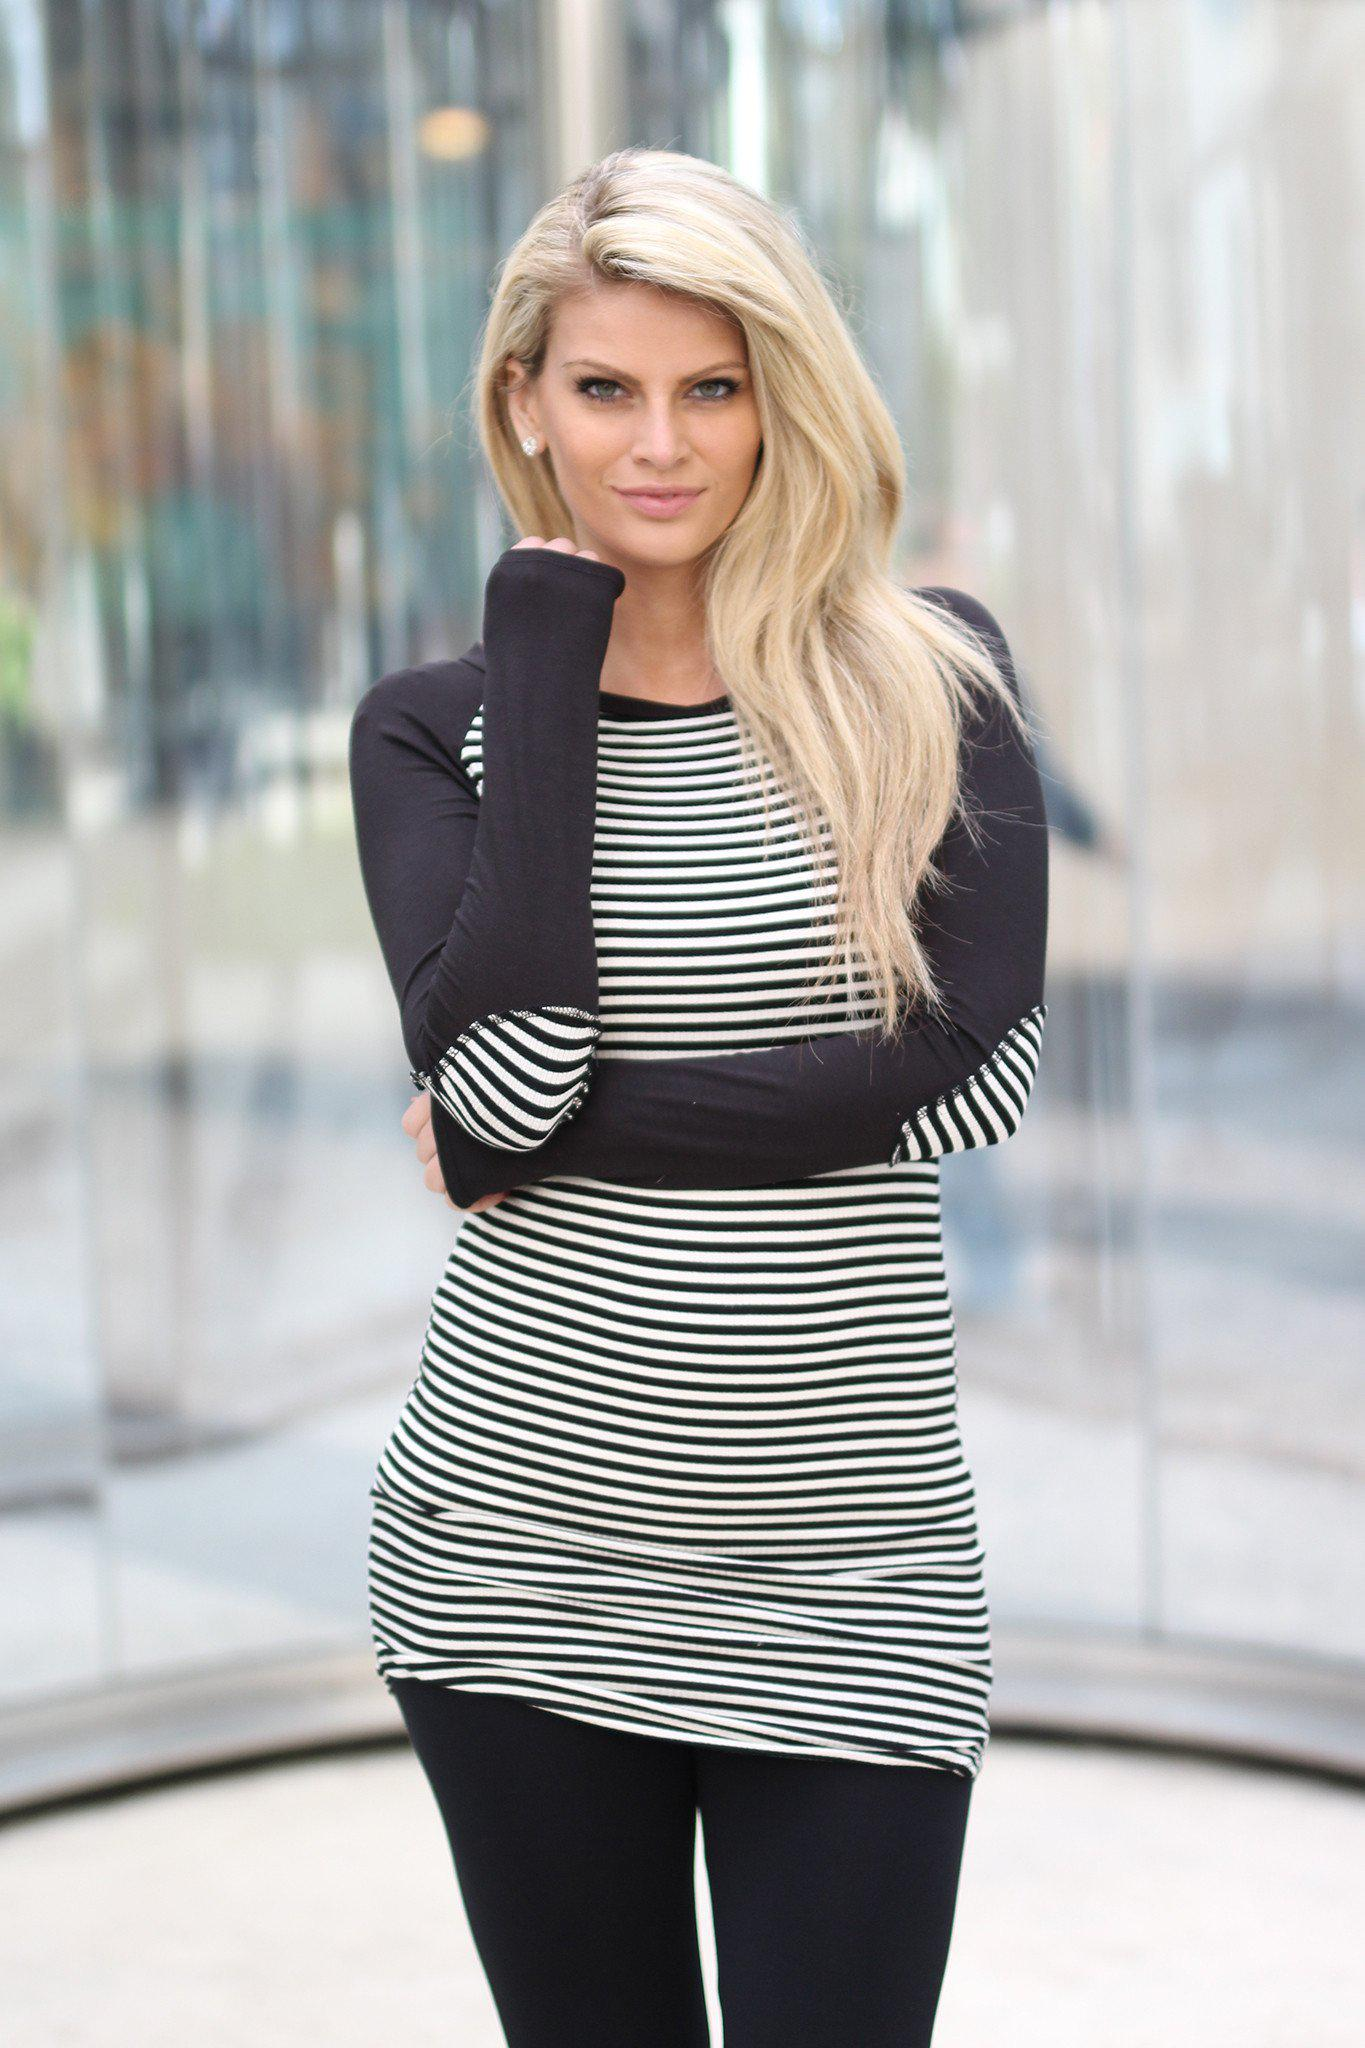 Black and Ivory Striped Top with Elbow Patches